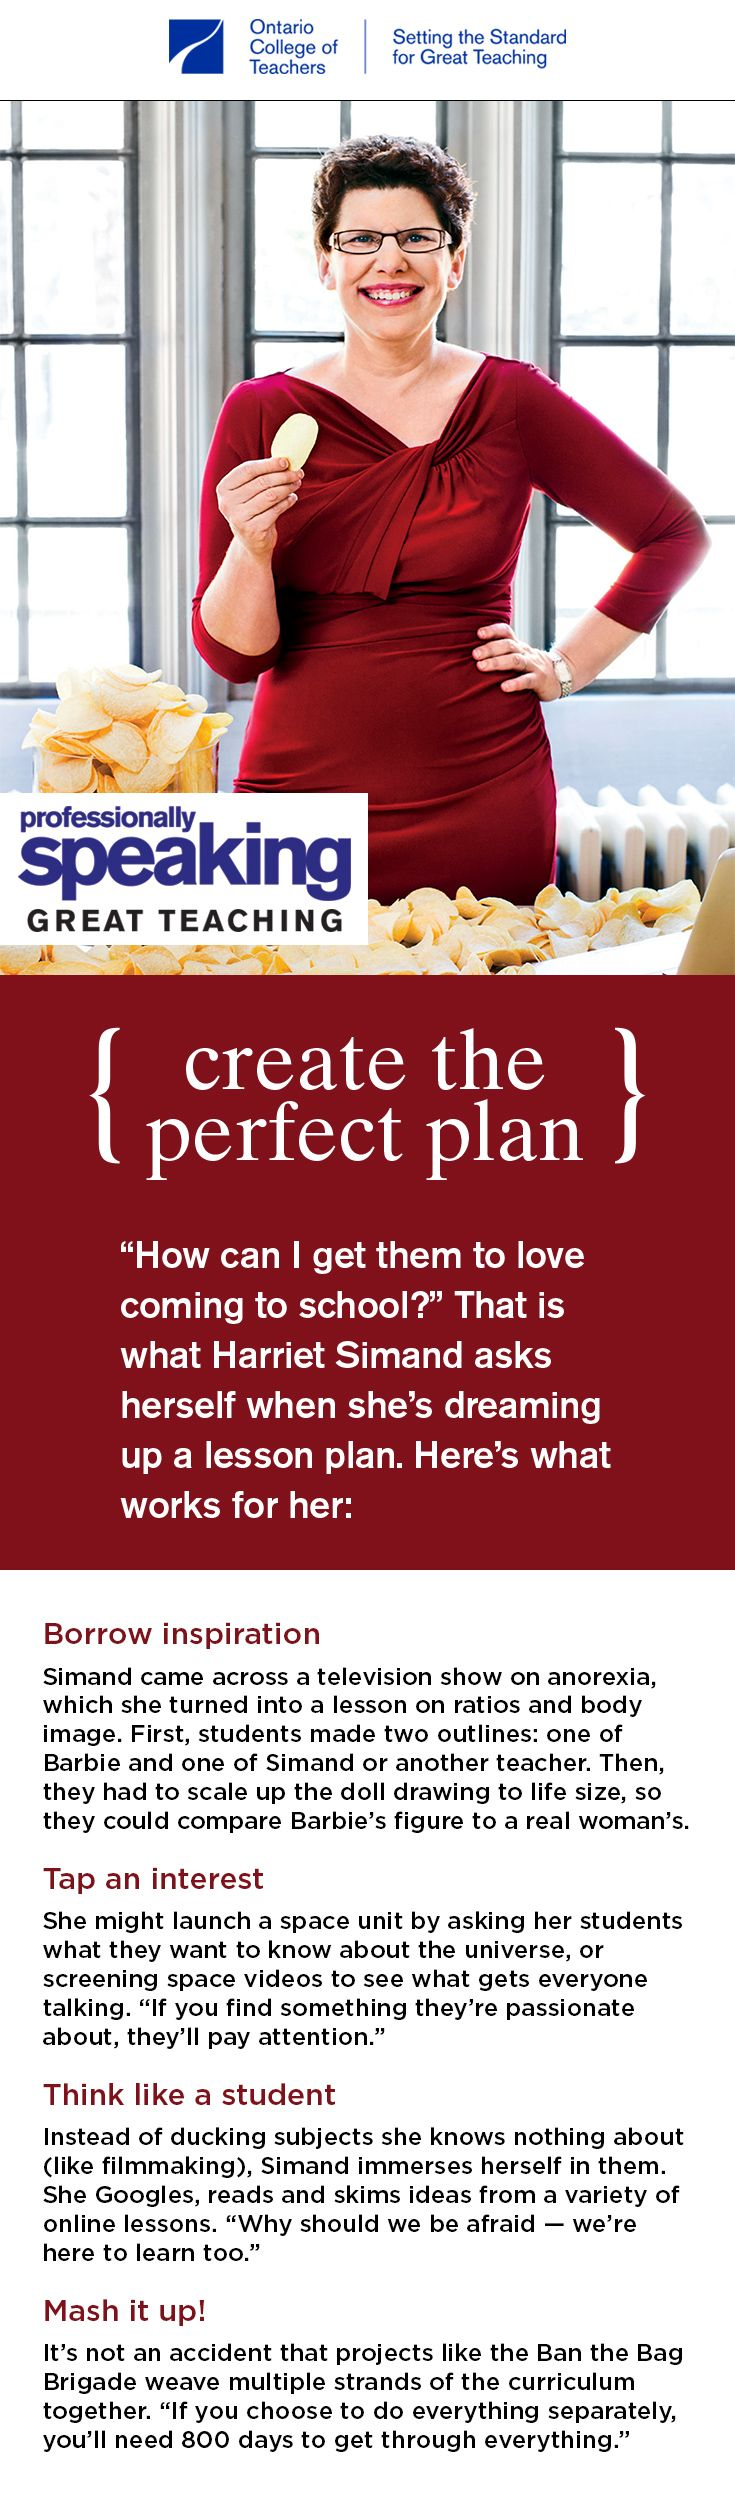 """""""How can I get them to love coming to #school?"""" That is what Harriet Simand asks herself when she's dreaming up a #lessonplan. Here's what works for her. #teacherstips #classroom #teacherideas #classroomideas #education #educational #school #classroomtips"""